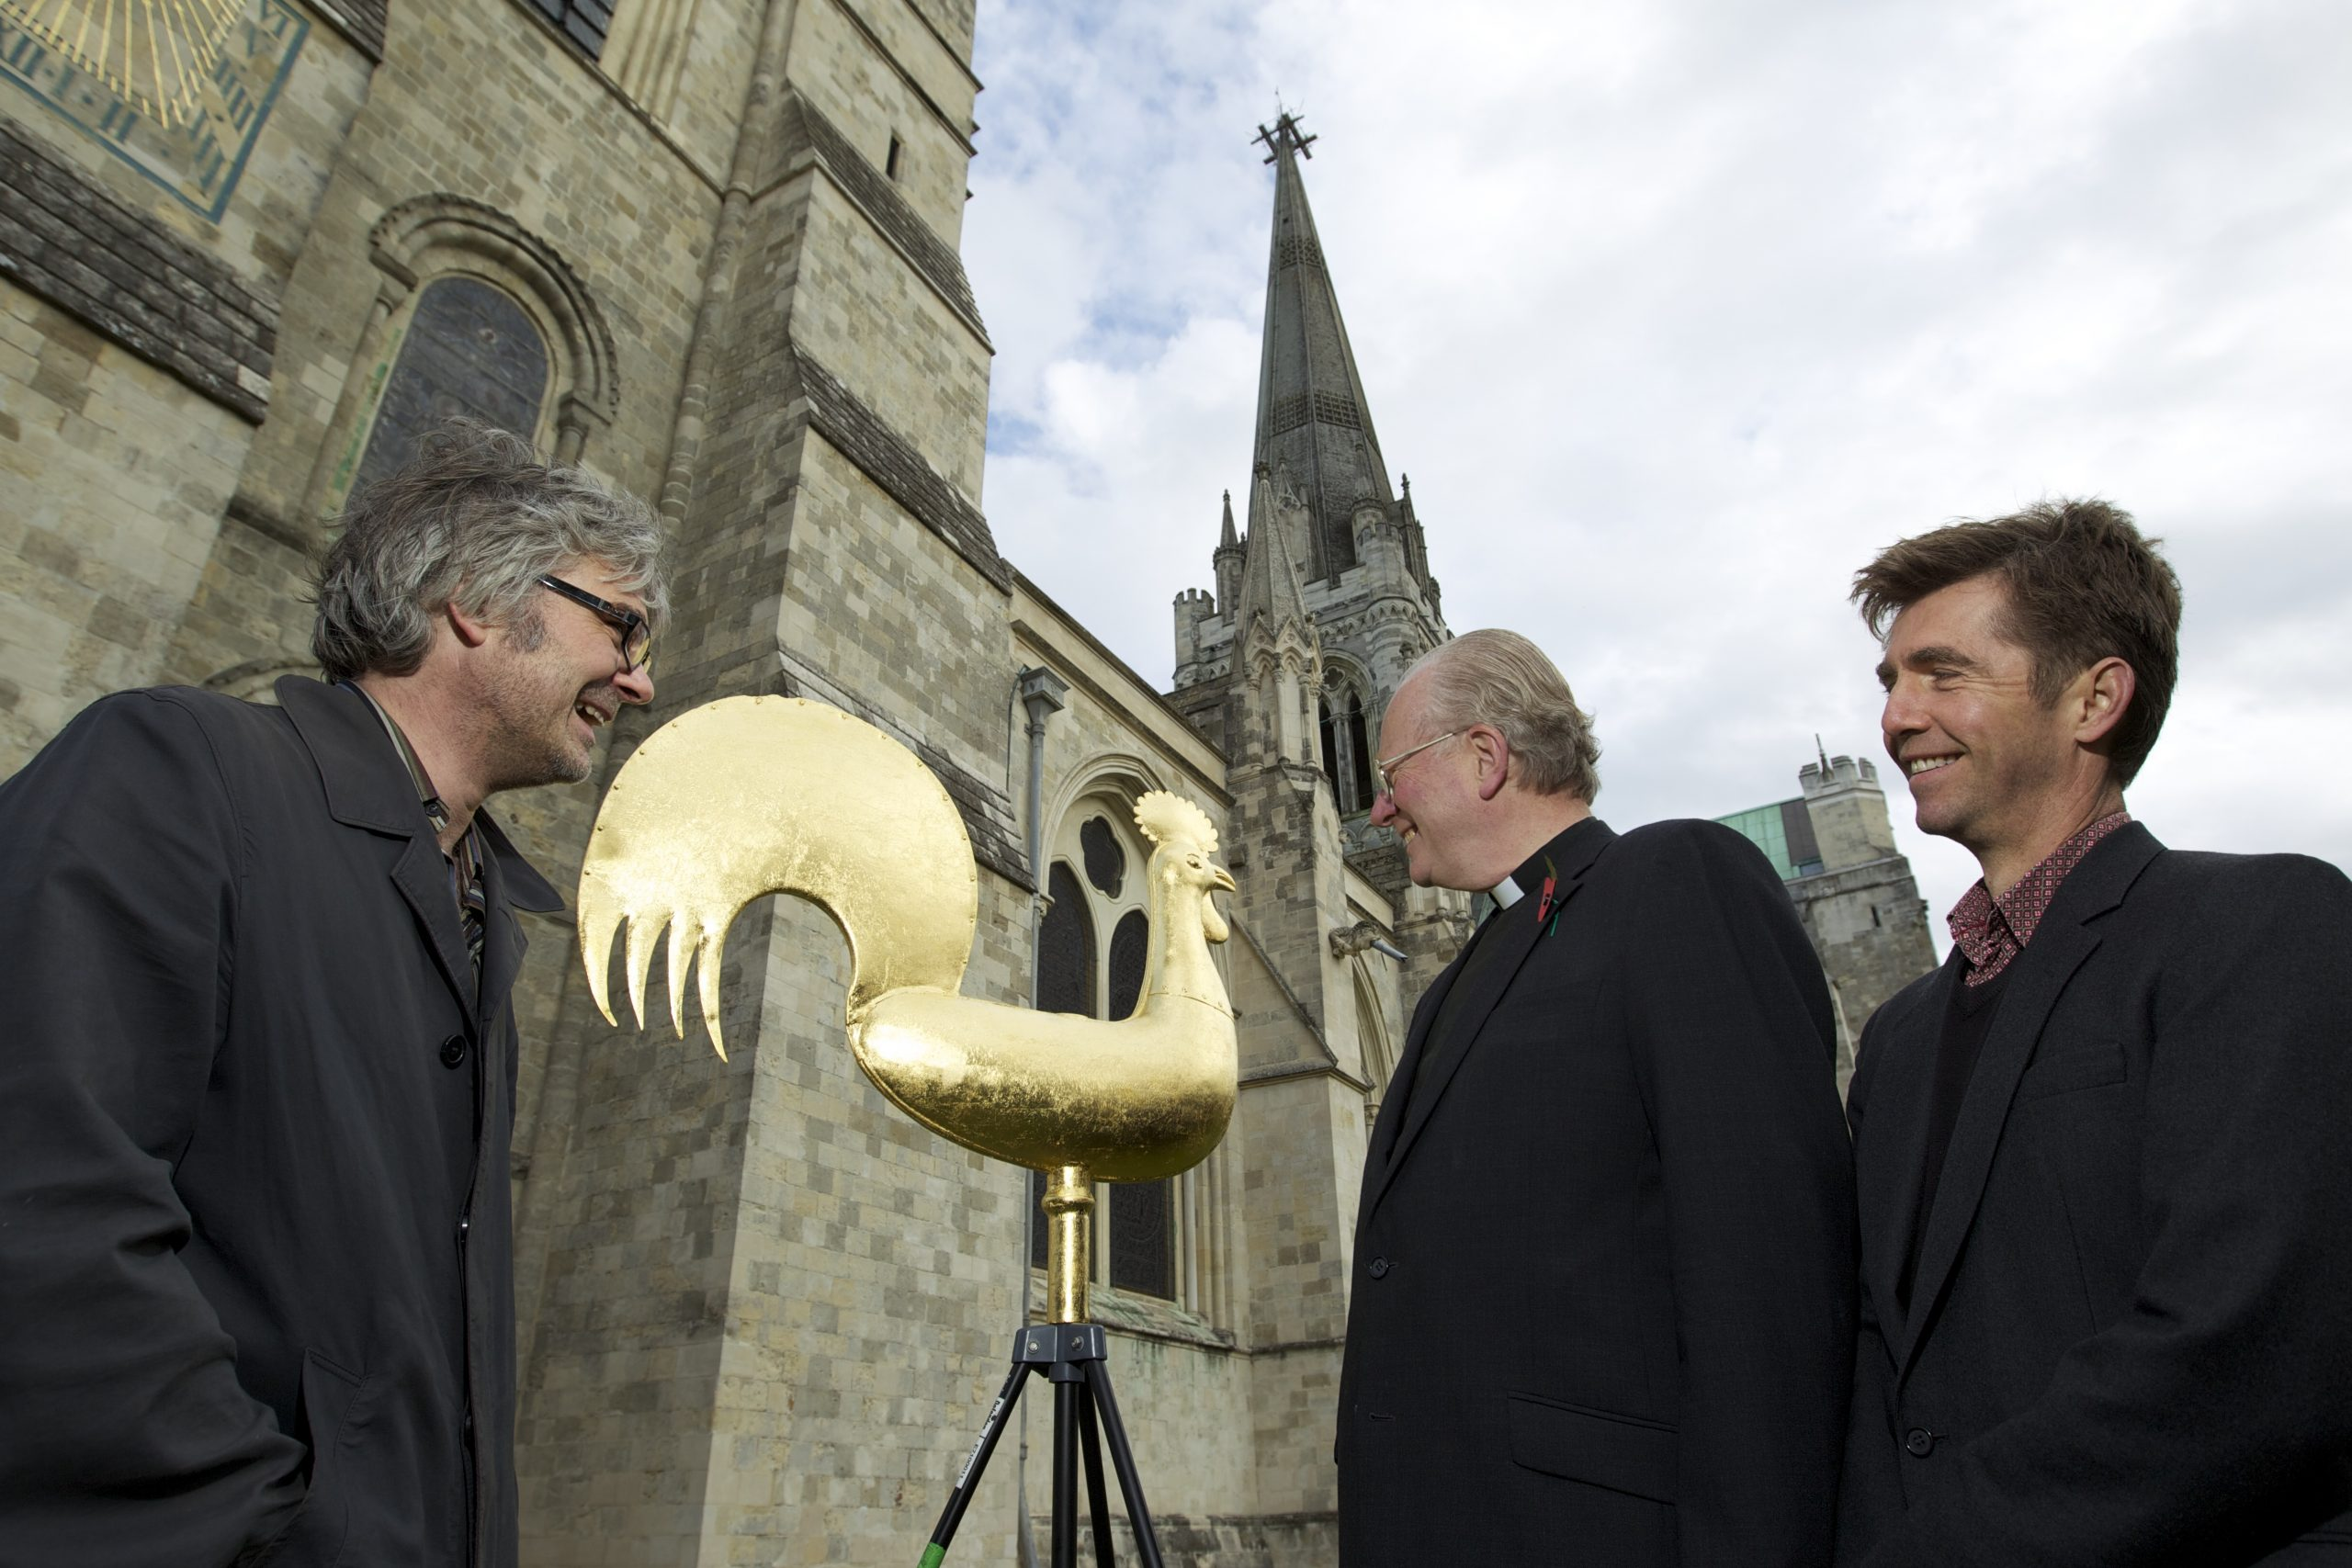 Chris Davis from Fairtrade Foundation, the Dean of Chichester Cathedral Nicholas Frayling and myself enjoying the moment at the launch of Chichester Cathedrals Fairtrade Gold Weather Vein.